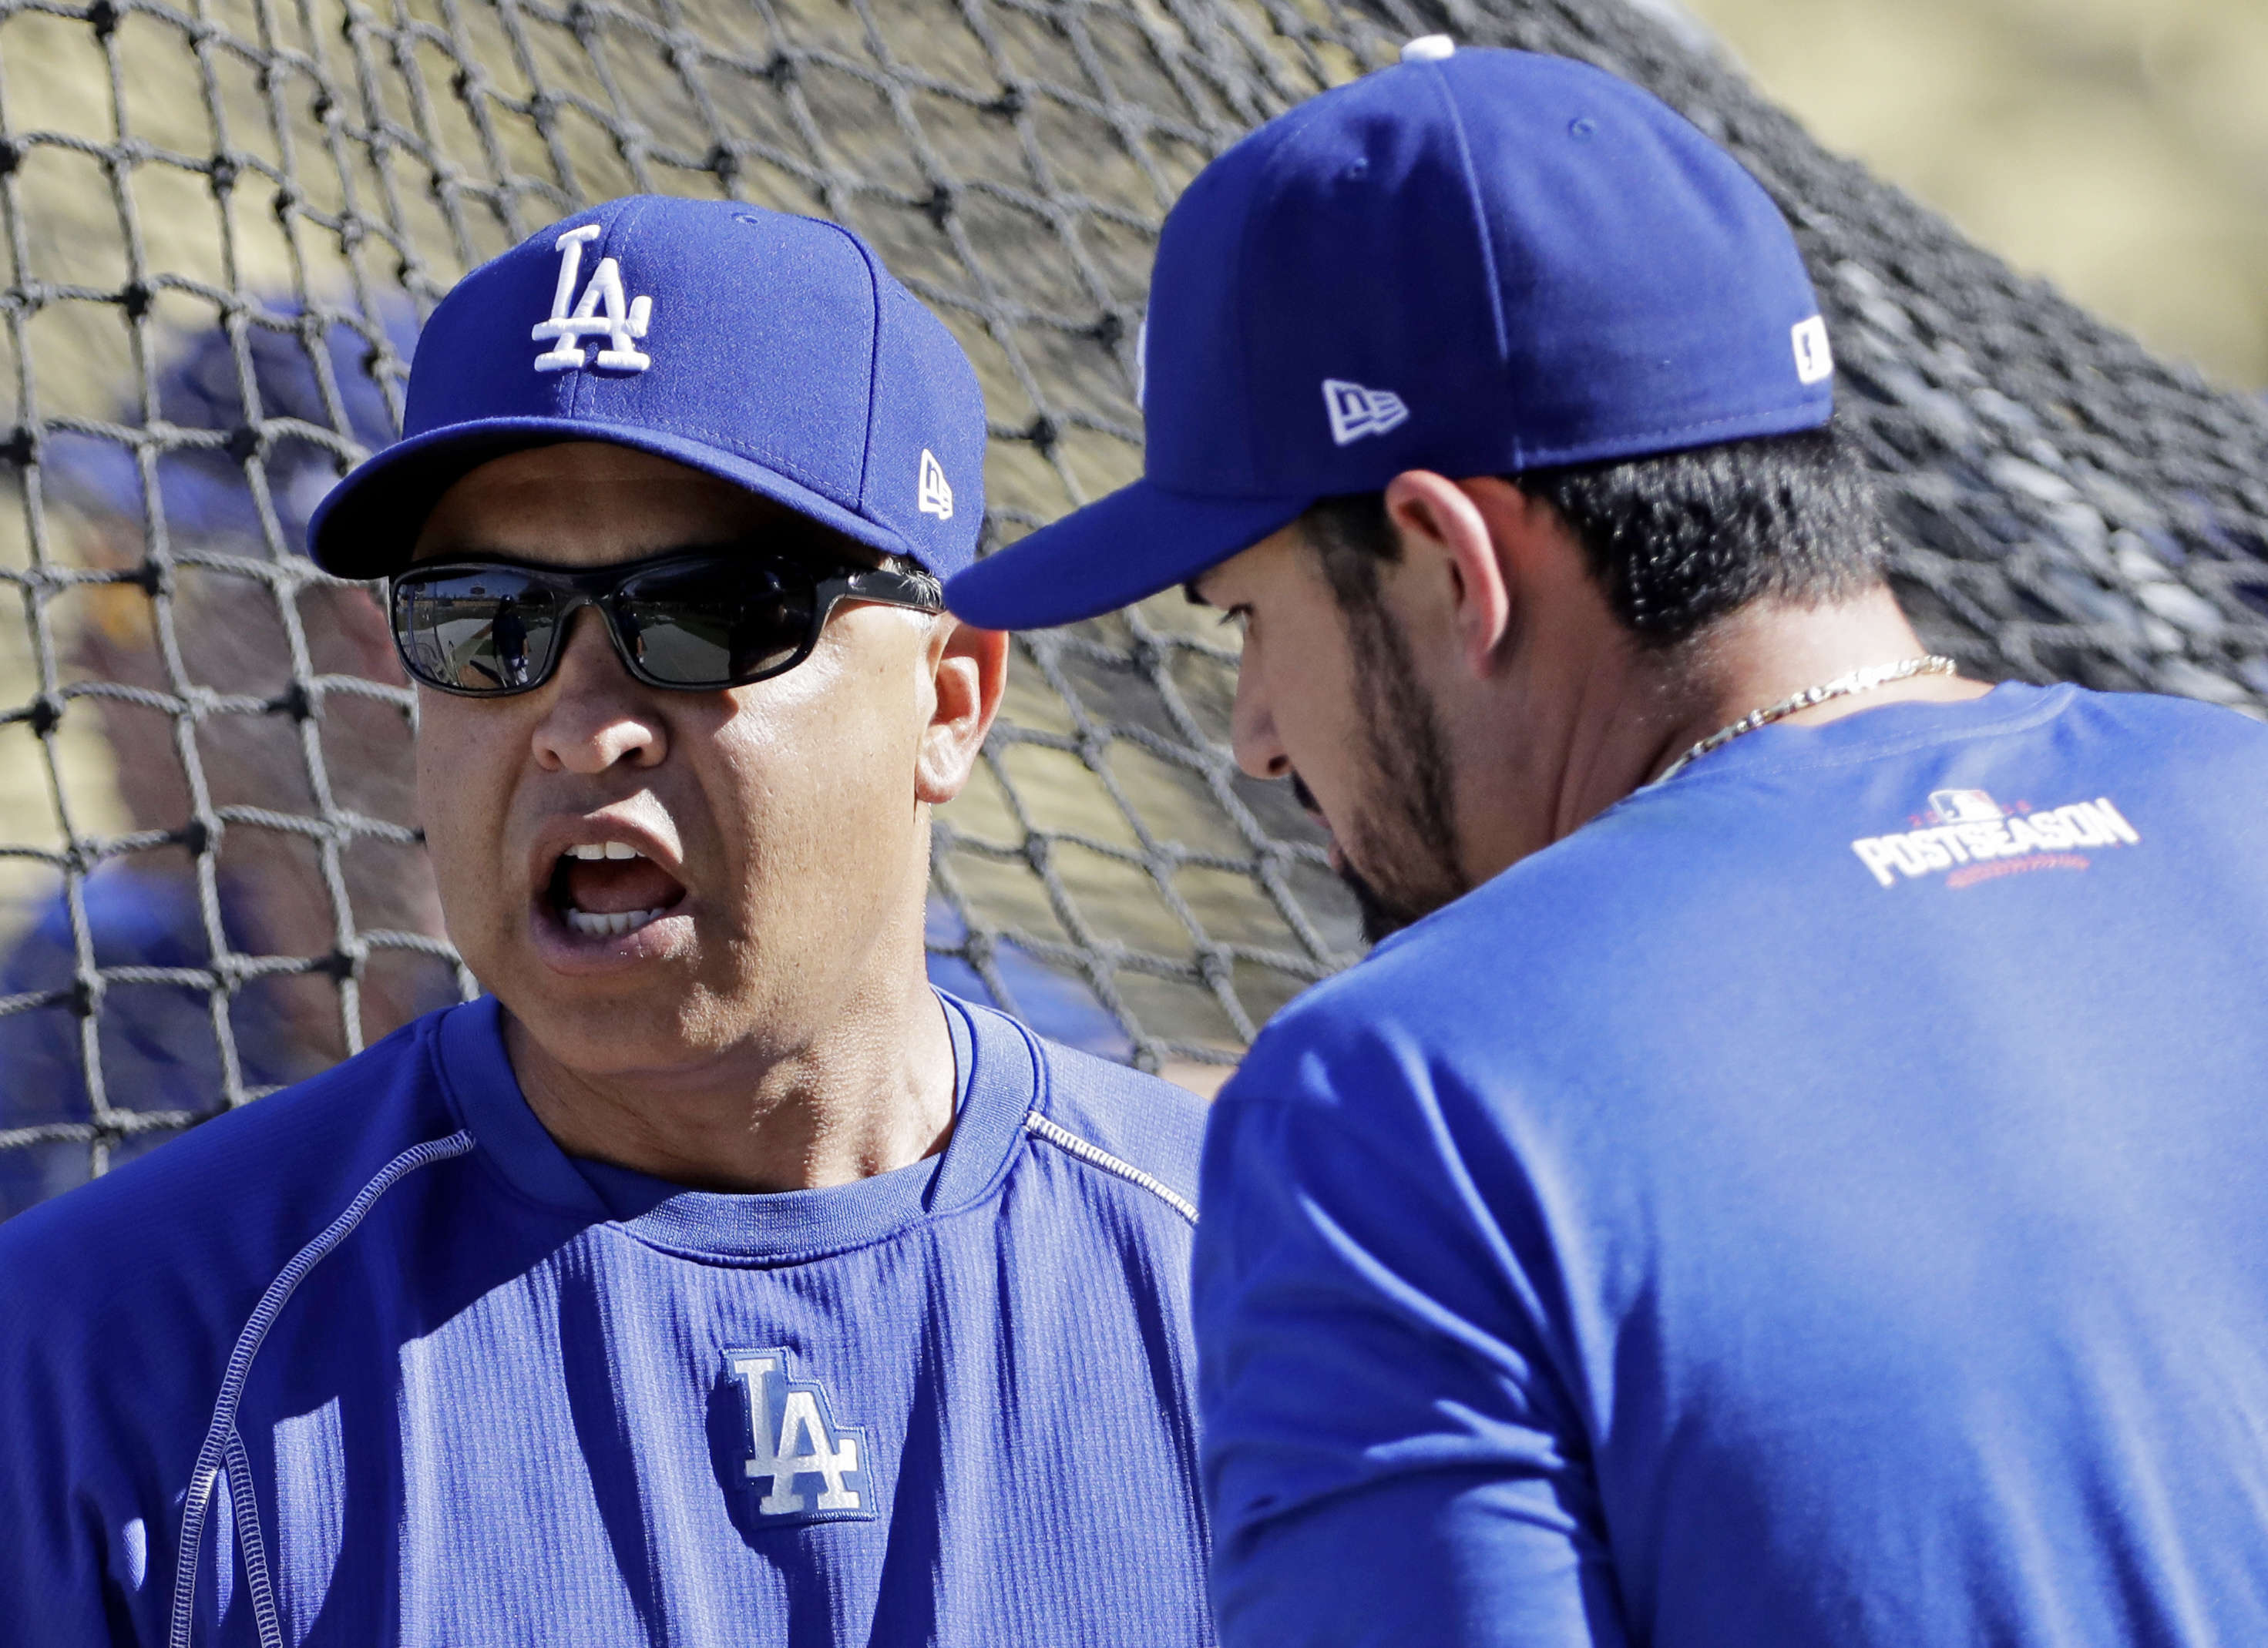 Los Angeles Dodgers manager Dave Roberts talks to Adrian Gonzalez before Game 4 of the National League baseball championship series against the Chicago Cubs Wednesday, Oct. 19, 2016, in Los Angeles. (AP Photo/David J. Phillip)